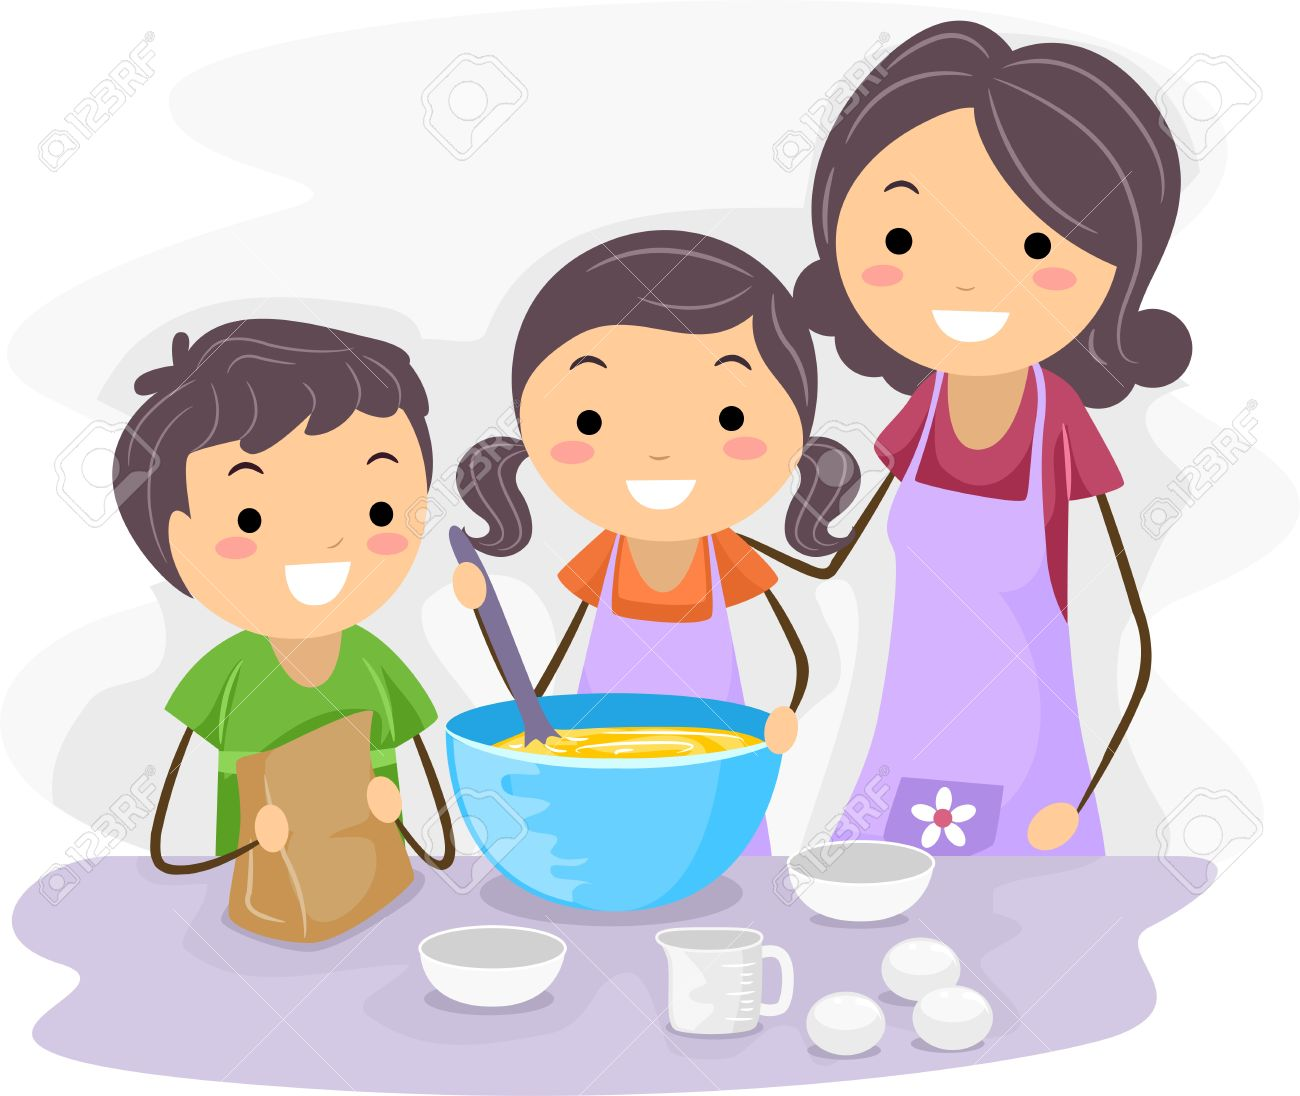 Illustration of Family Baking Pastries Together Stock Photo - 9991424